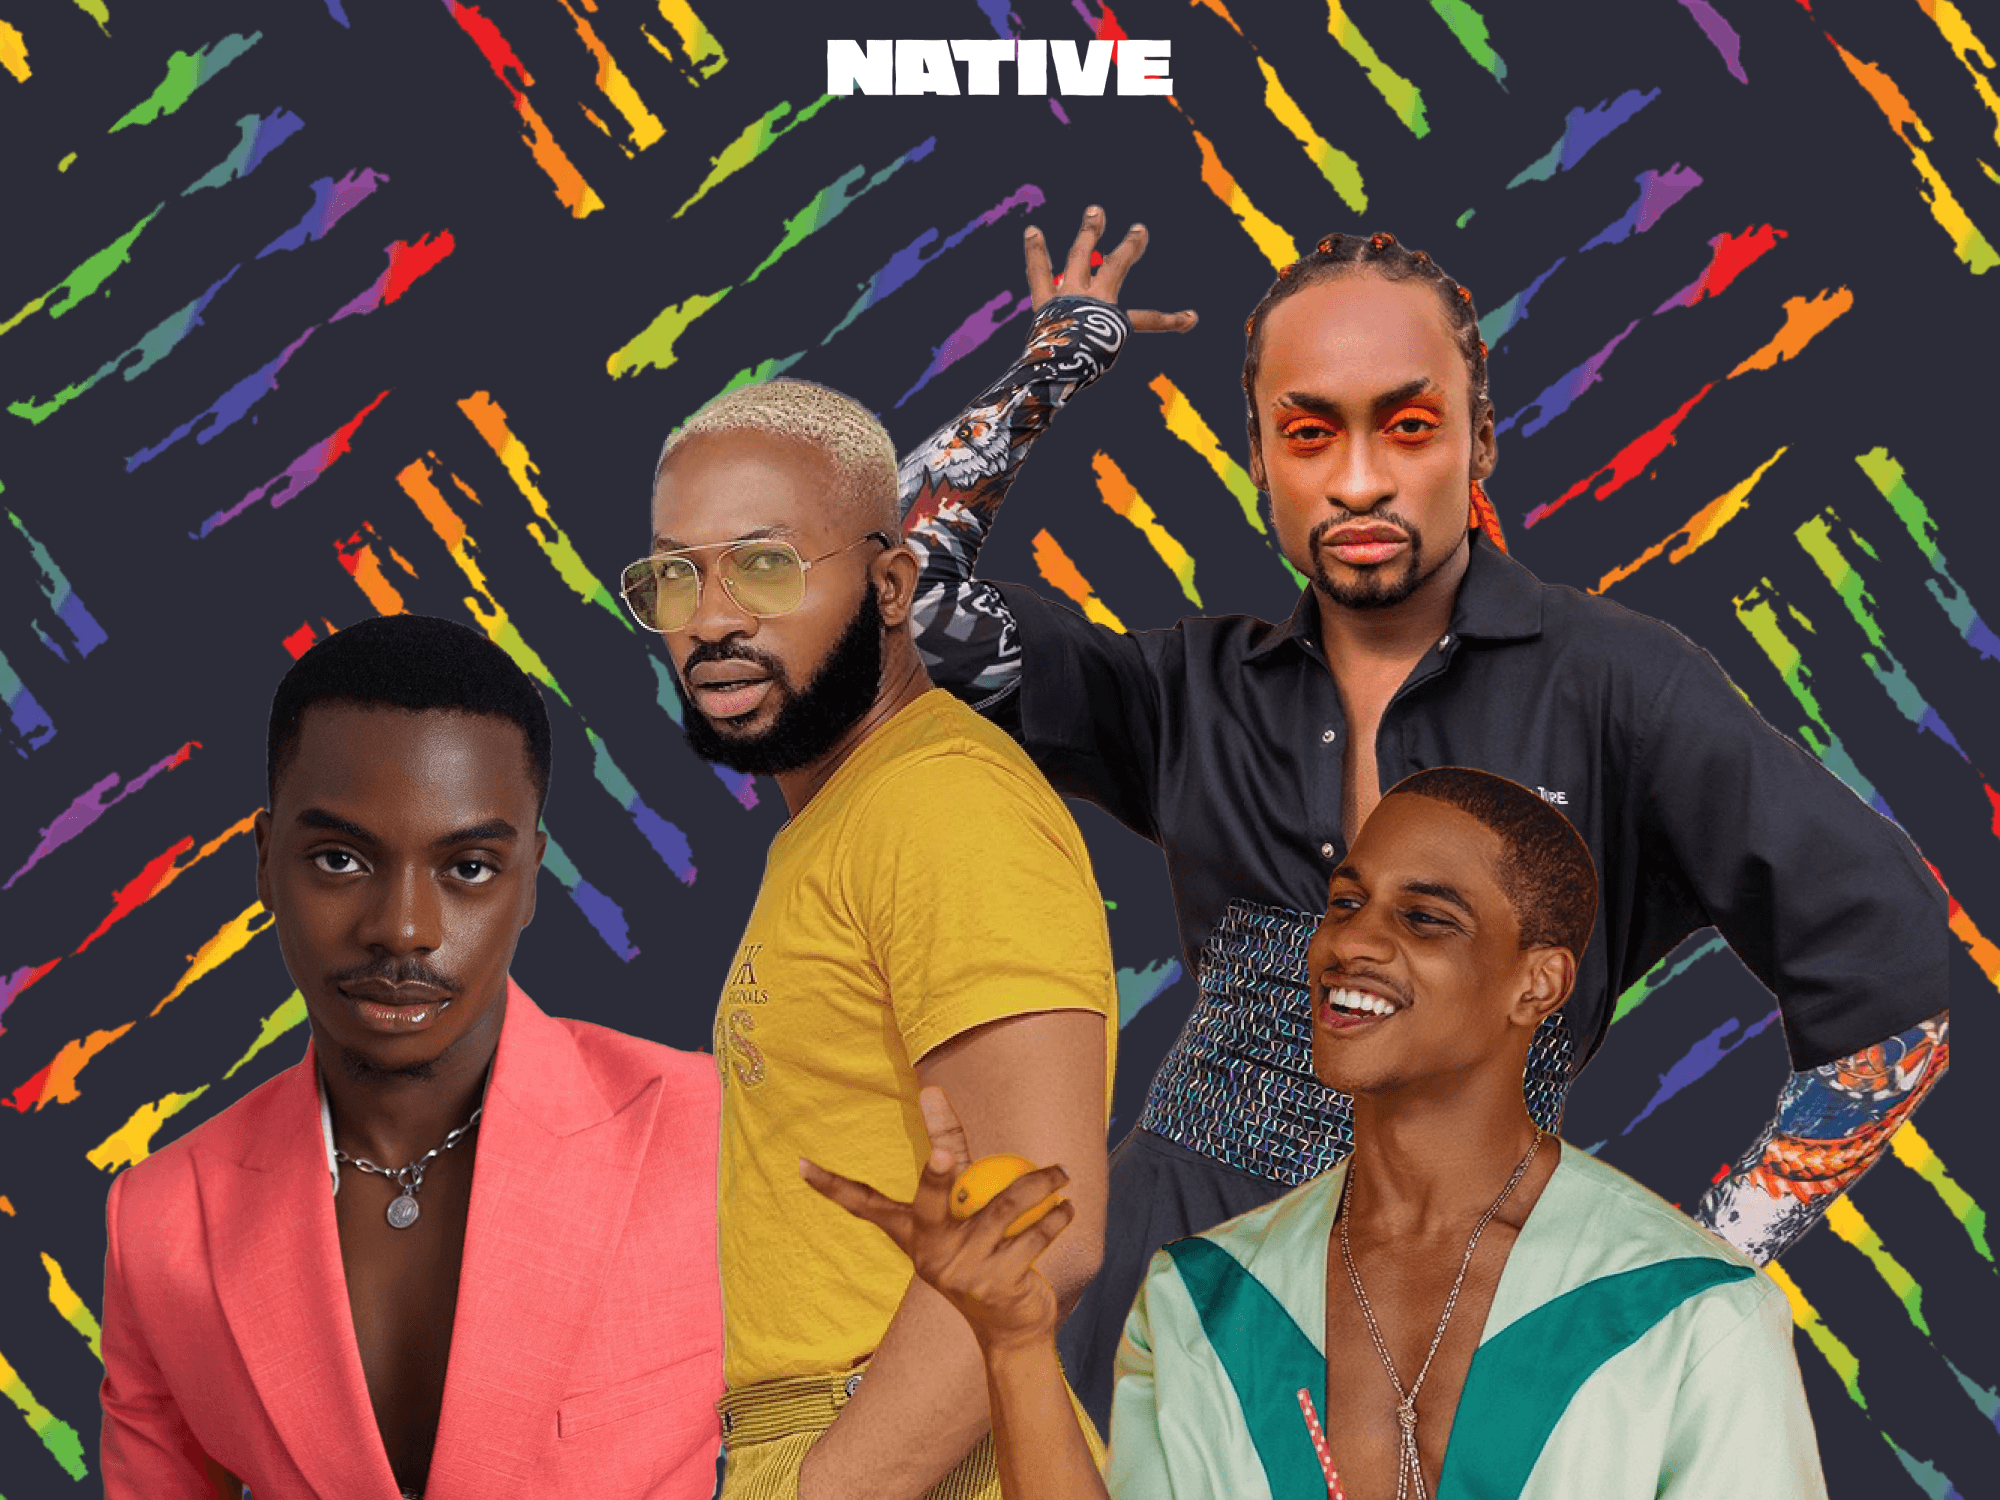 How Nigerian men are embracing self-expression through beauty and fashion